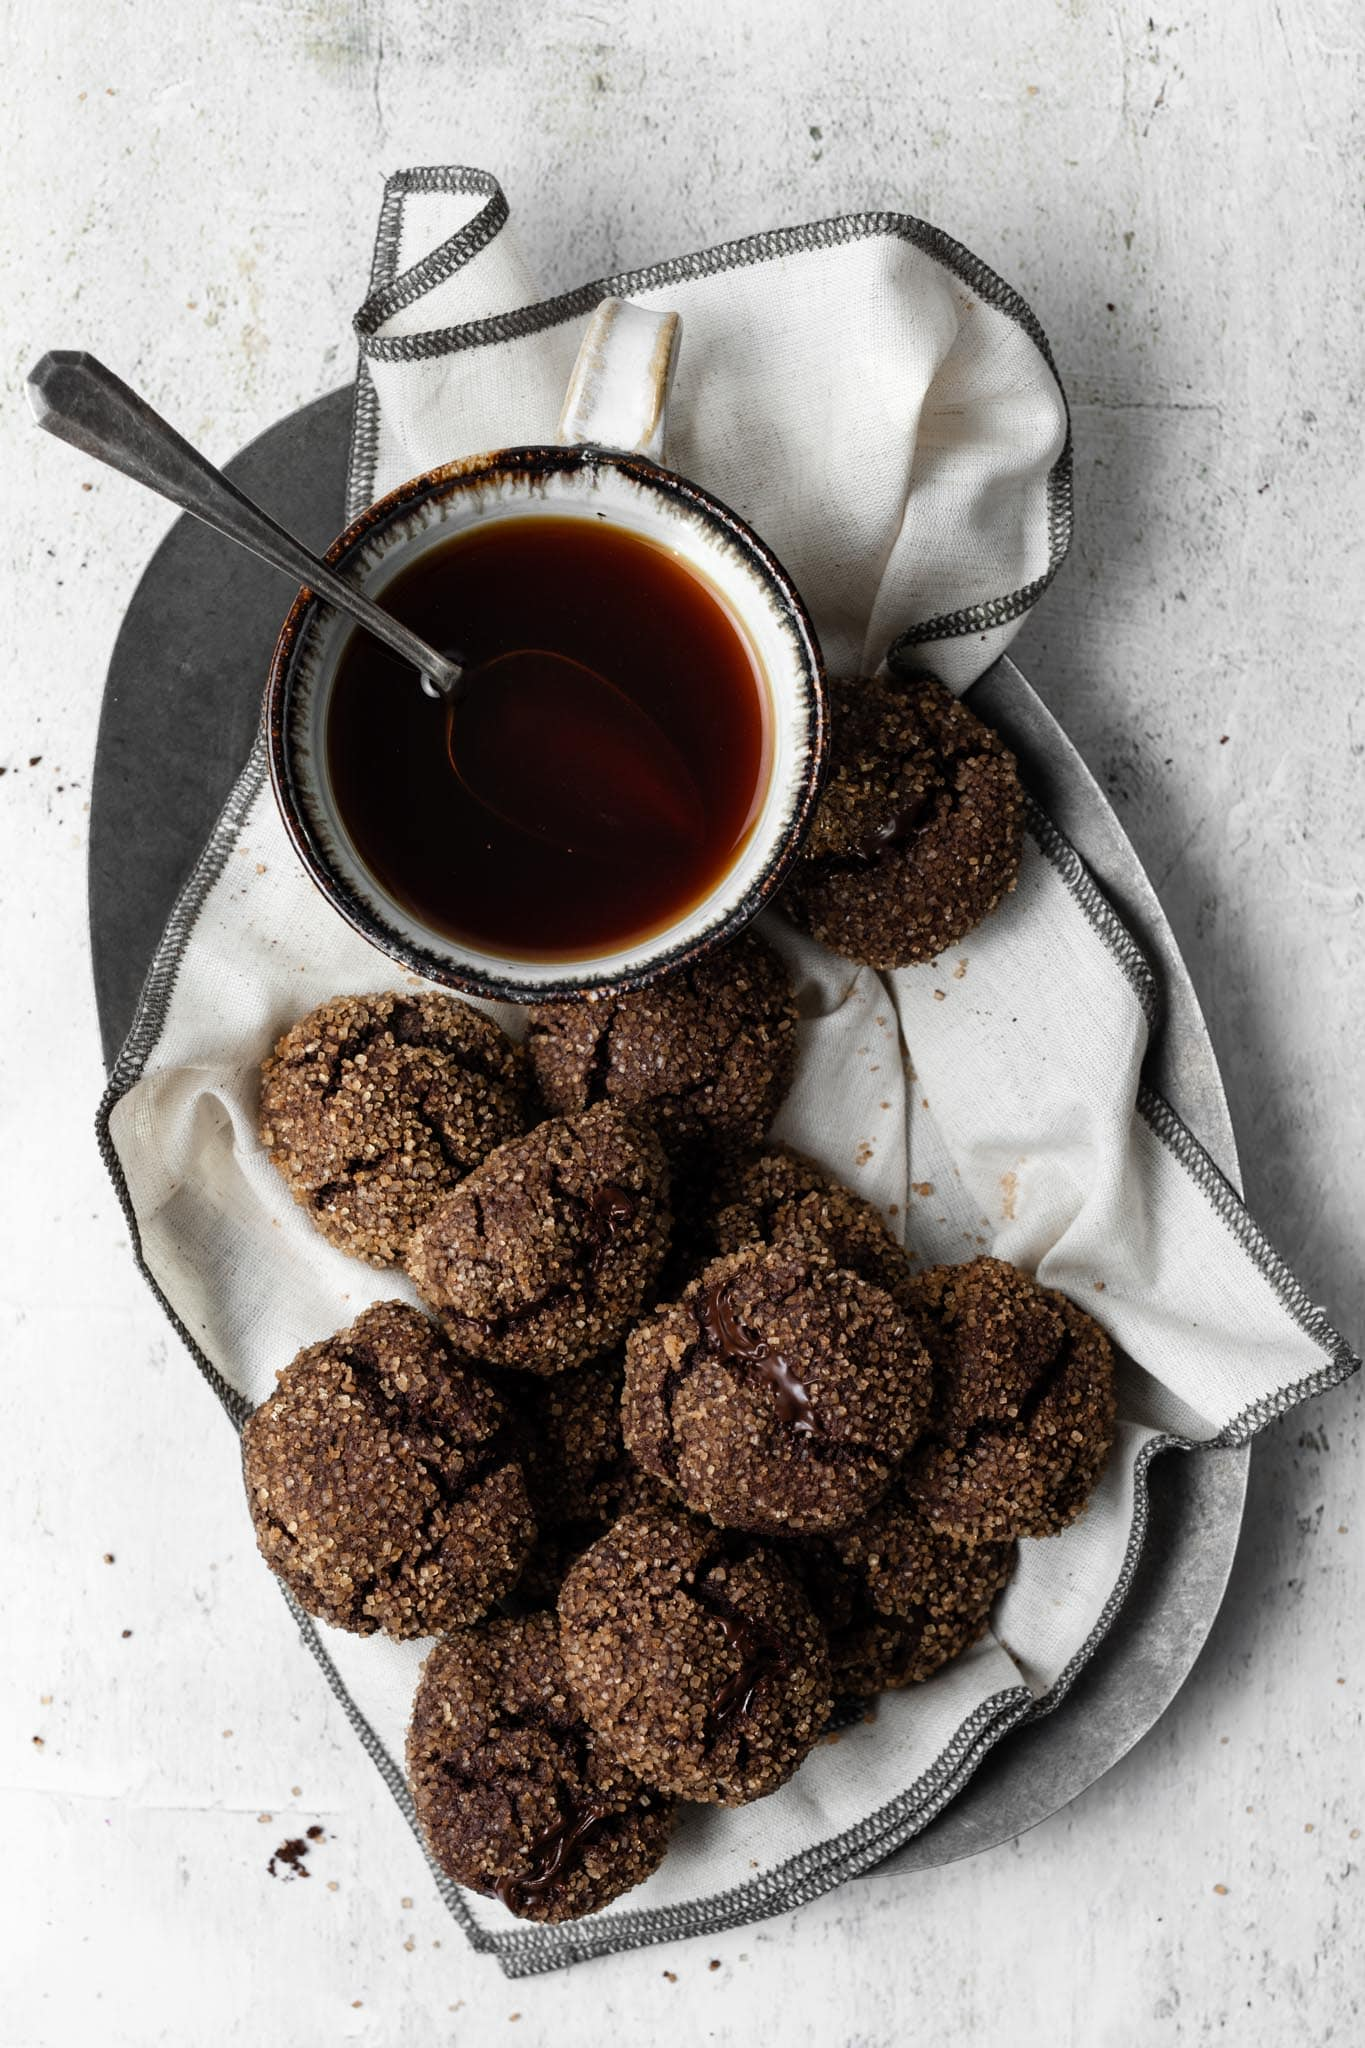 Chocolate Cookies with chai spice and chai tea.